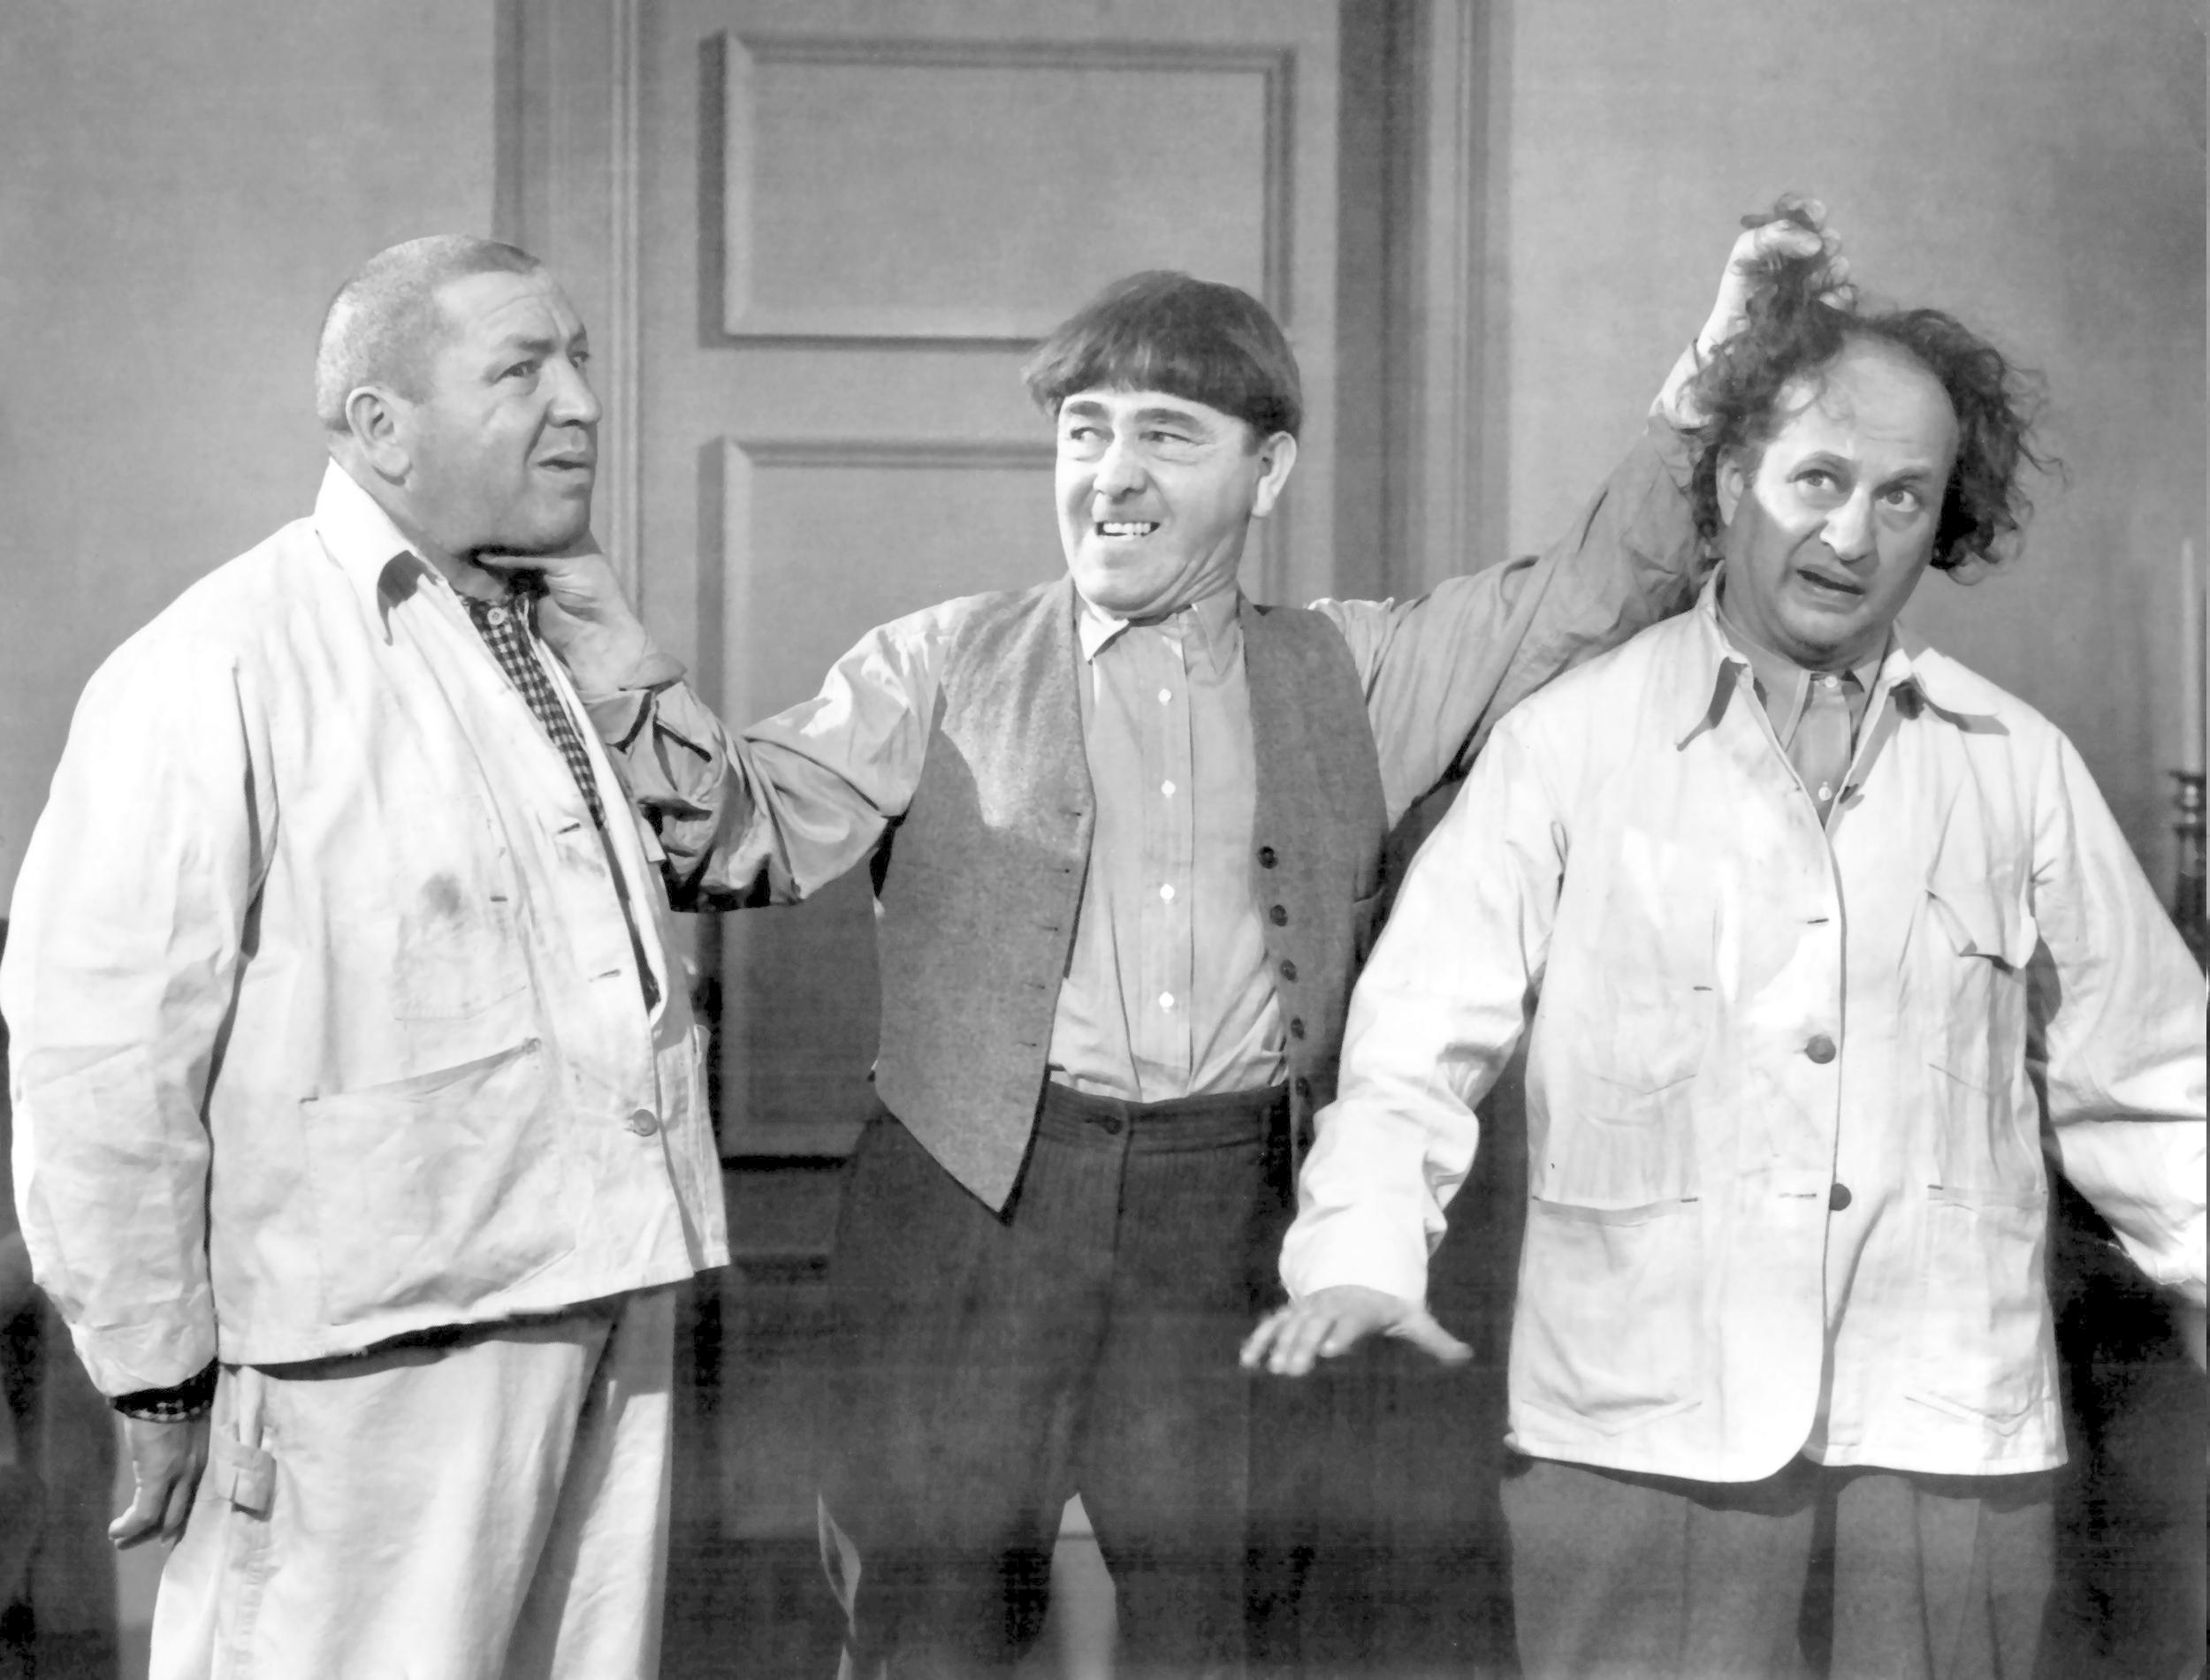 Three Stooges Wallpaper Group Pictures Monochrome